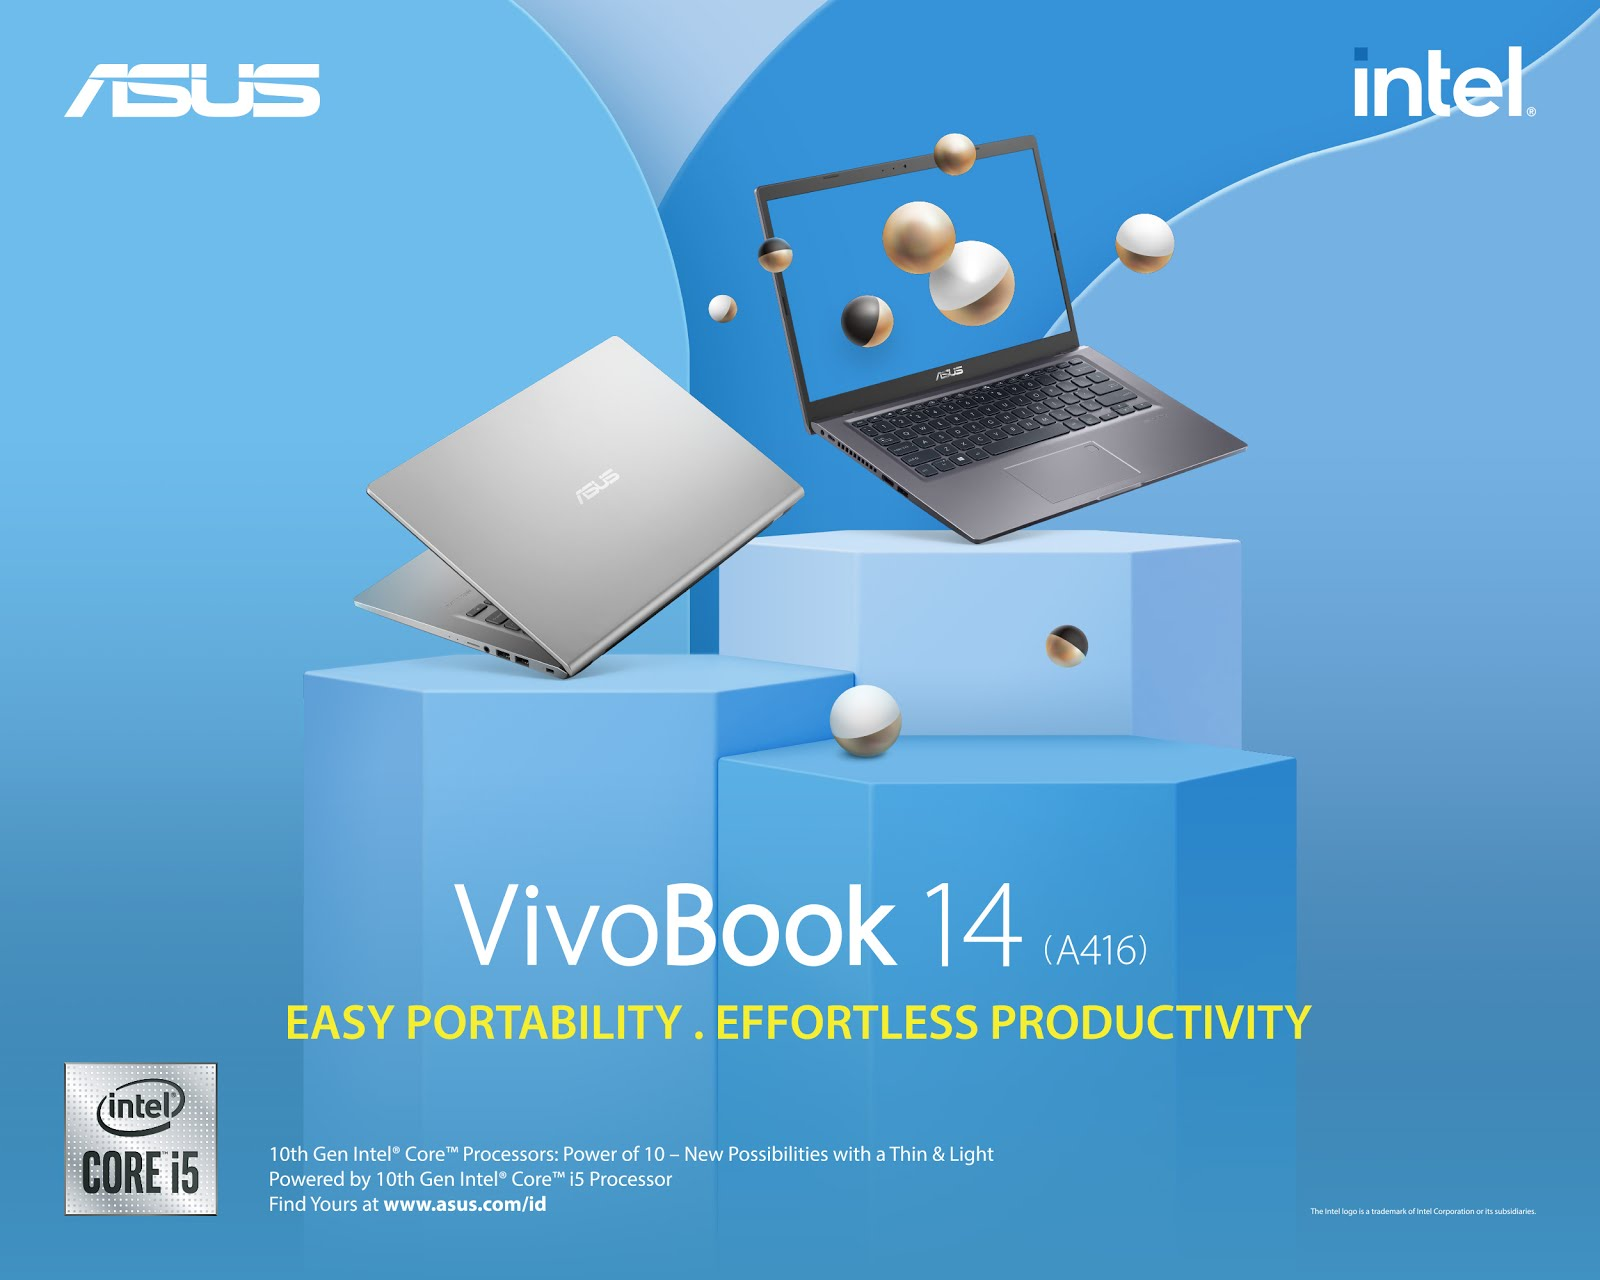 ASUS VivoBook 14 (A416) Blog Competition